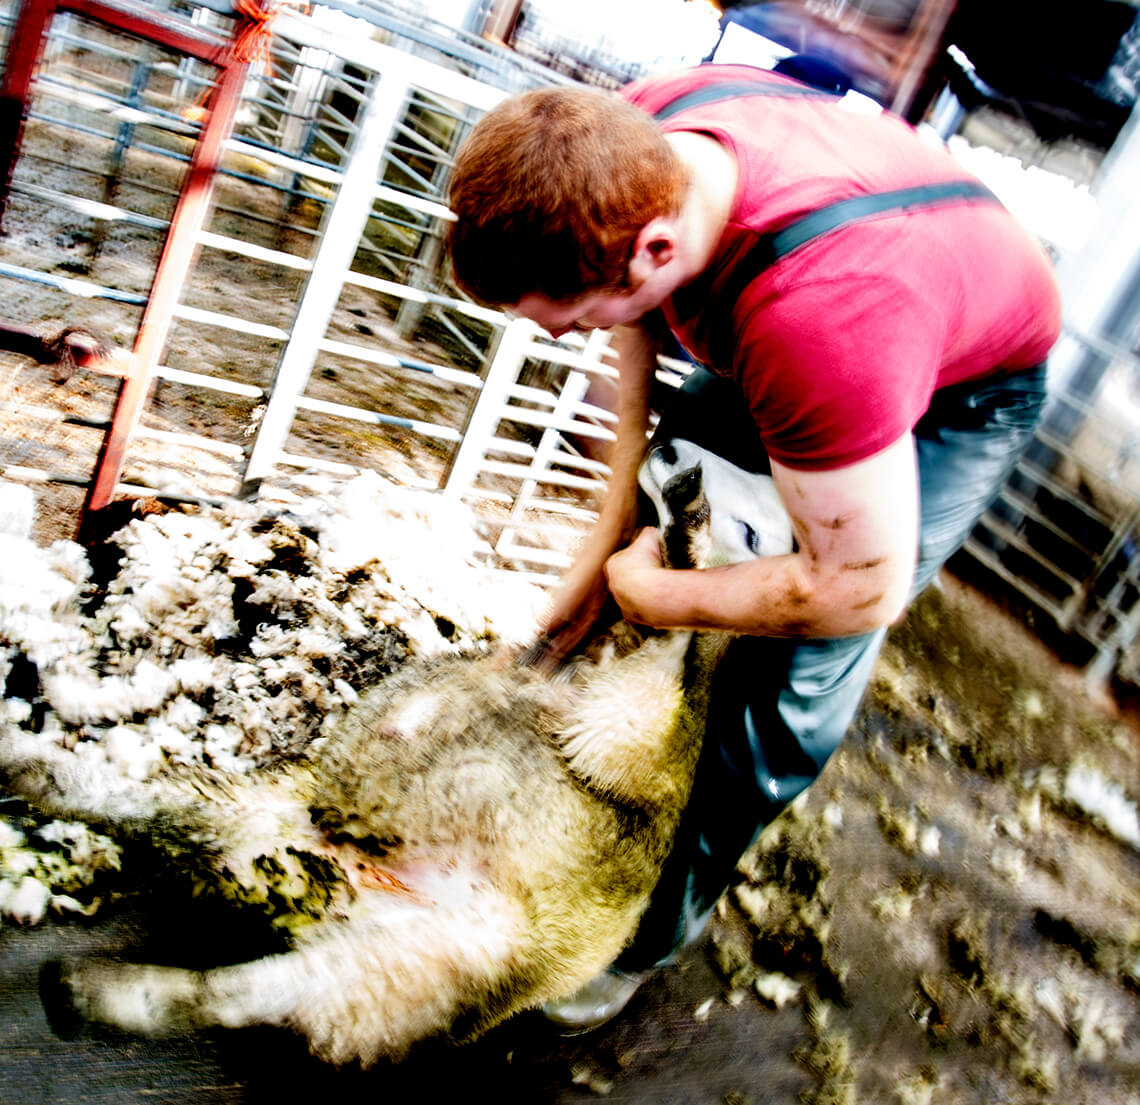 Sheep shearer up to his elbows - Gisburn farmers market